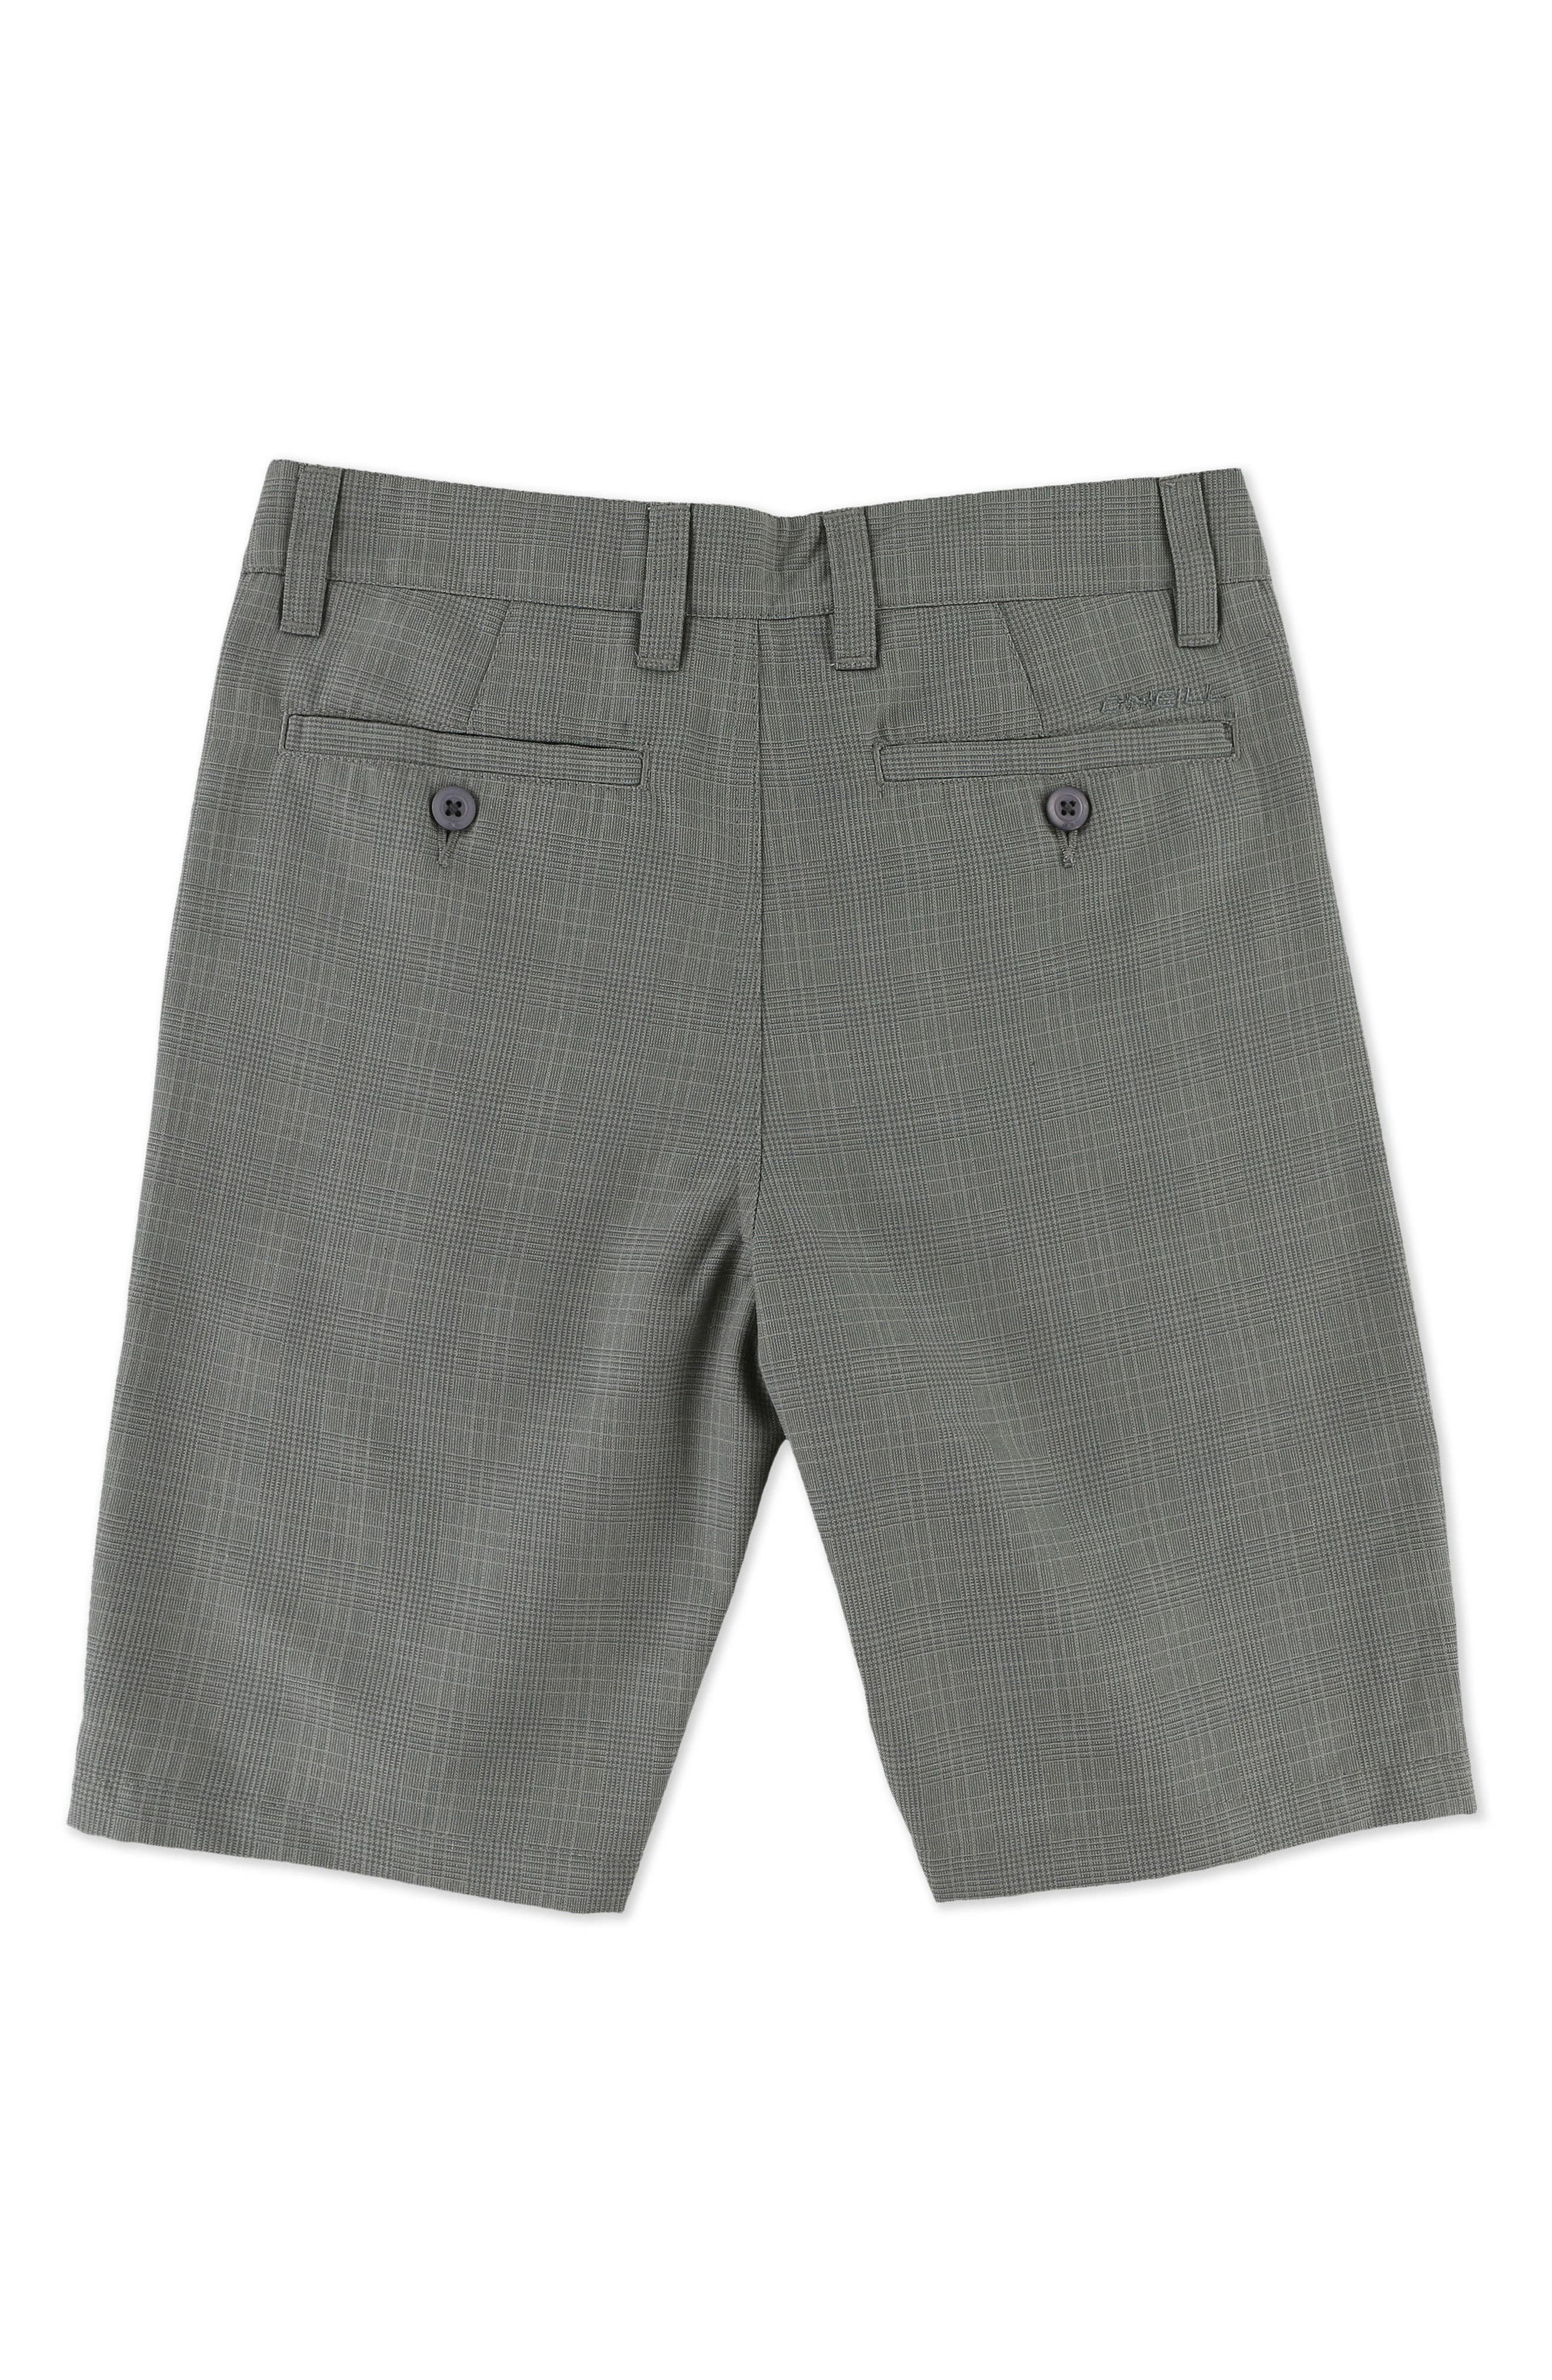 Alternate Image 2  - O'Neill Delta Plaid Chino Shorts (Little Boys)